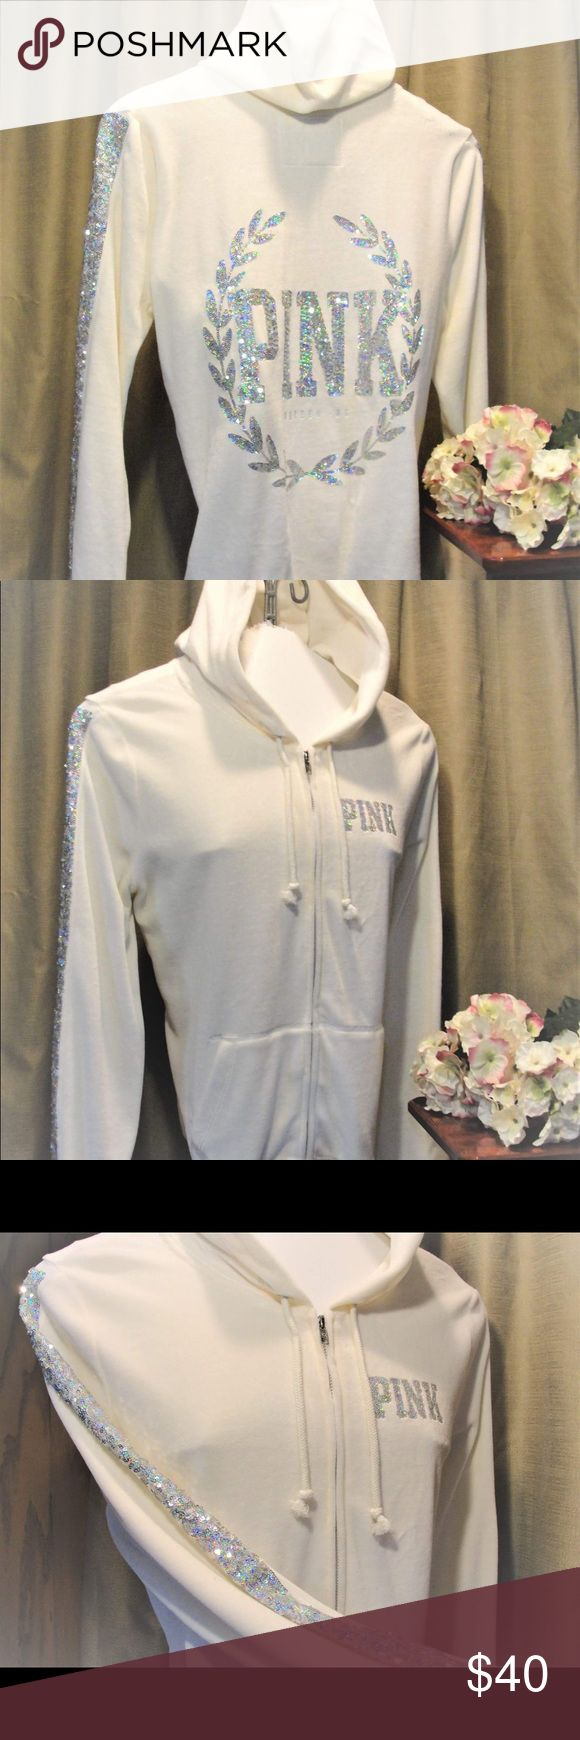 PINK-Ivory Velour w Silver Sequins Zip Up Hoodie. Oh so soft, Ivory & Silver Sequins Hoodie by PINK. I am VERY picky about the items that come to me, I inspect like I am the buyer. Most items from VS and the PINK line ARE New without Tags or Worn Once. So buy with confidence! I DO NOT trade, I'm so sorry 😐 and I will consider discounts on bundles but please understand, I do this to make money, not lose it! I live on a farm with much to do so please be patient Poshers, I'll get to you ASAP…